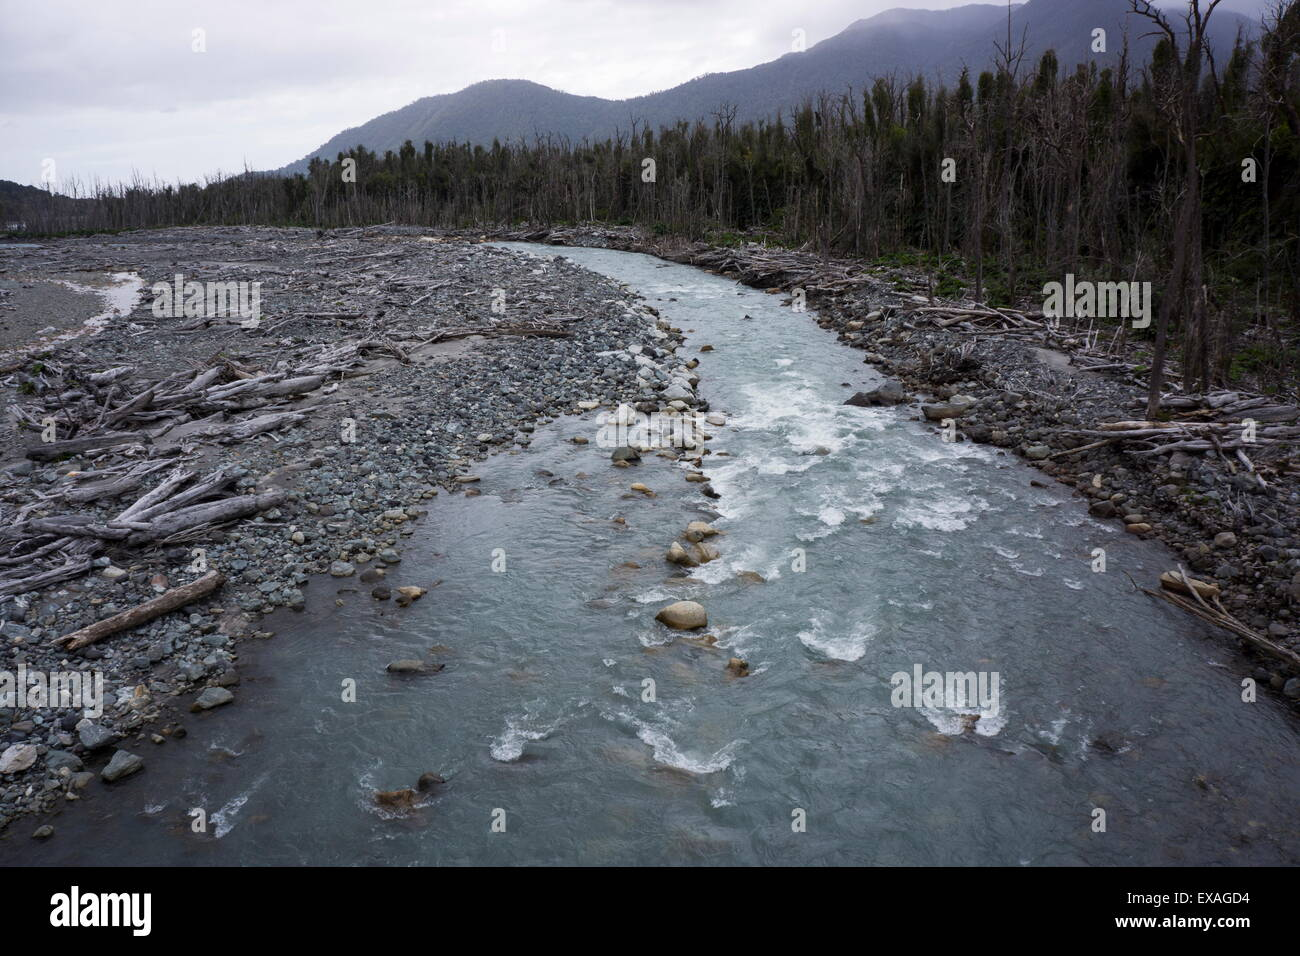 River in the Andes, destruction caused by earthquake, Patagonia, Chile, South America - Stock Image